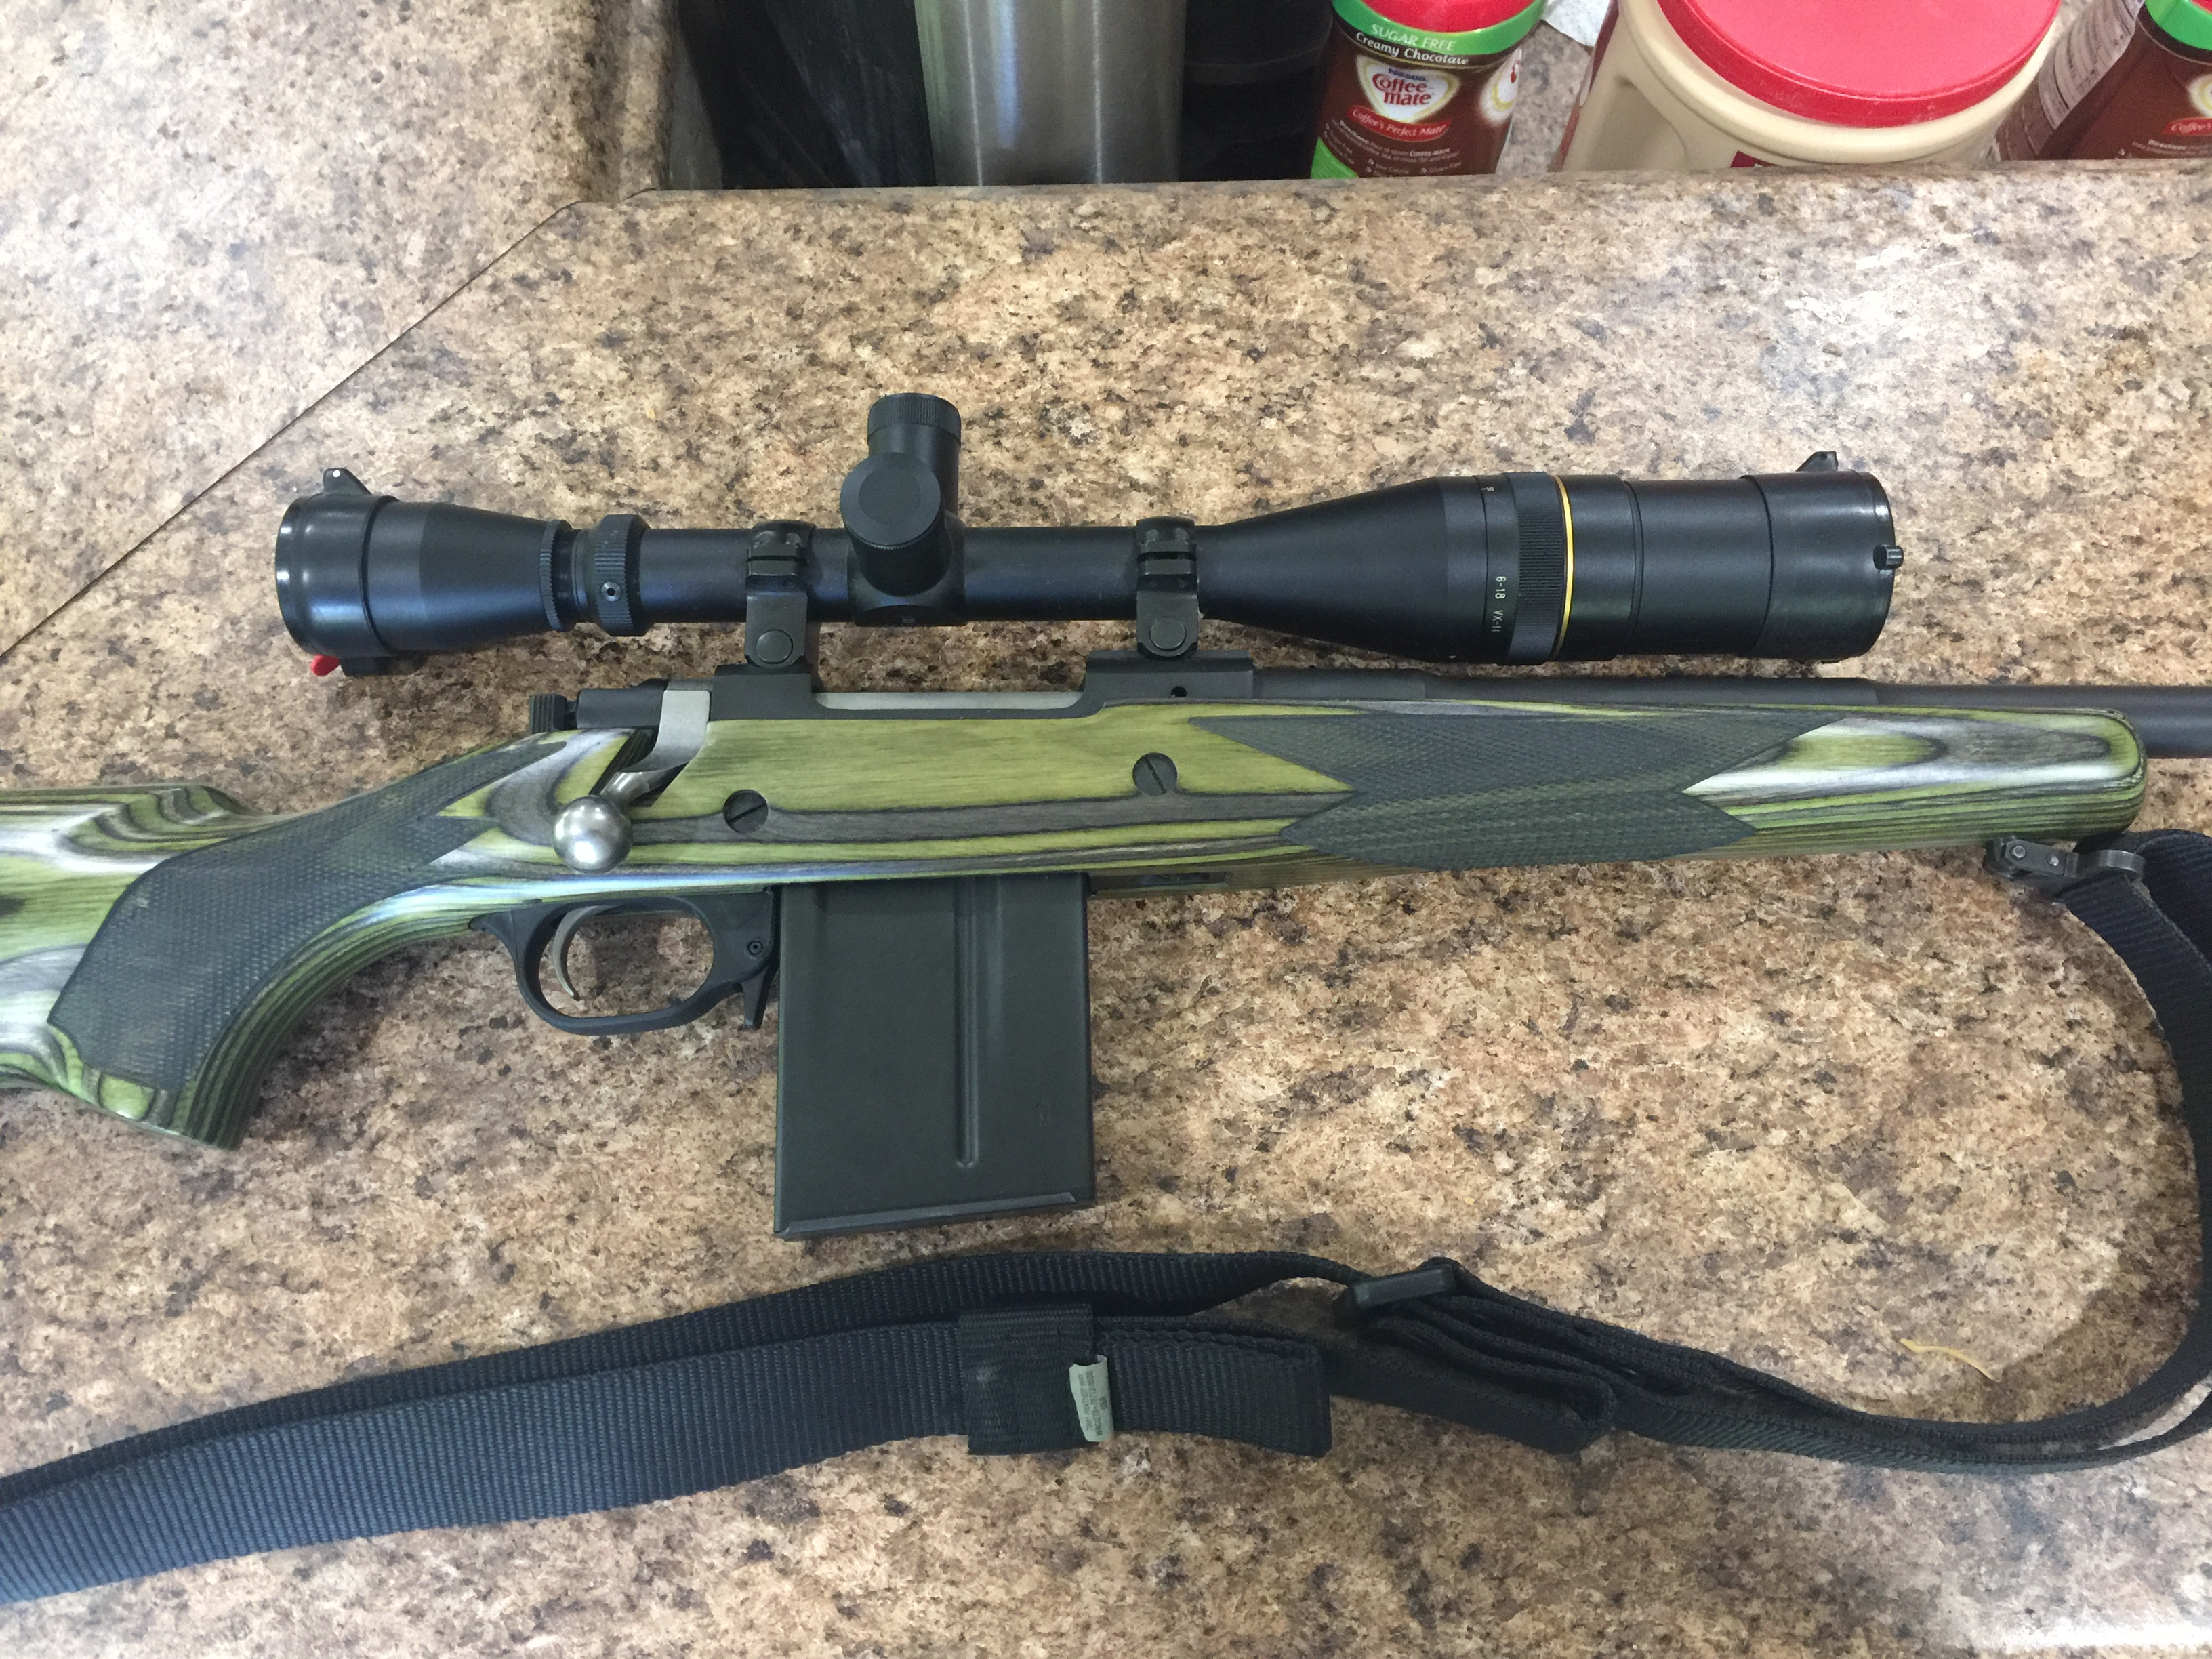 Ruger Gunsite Scout Rifle (Auction ID: 9572733, End Time